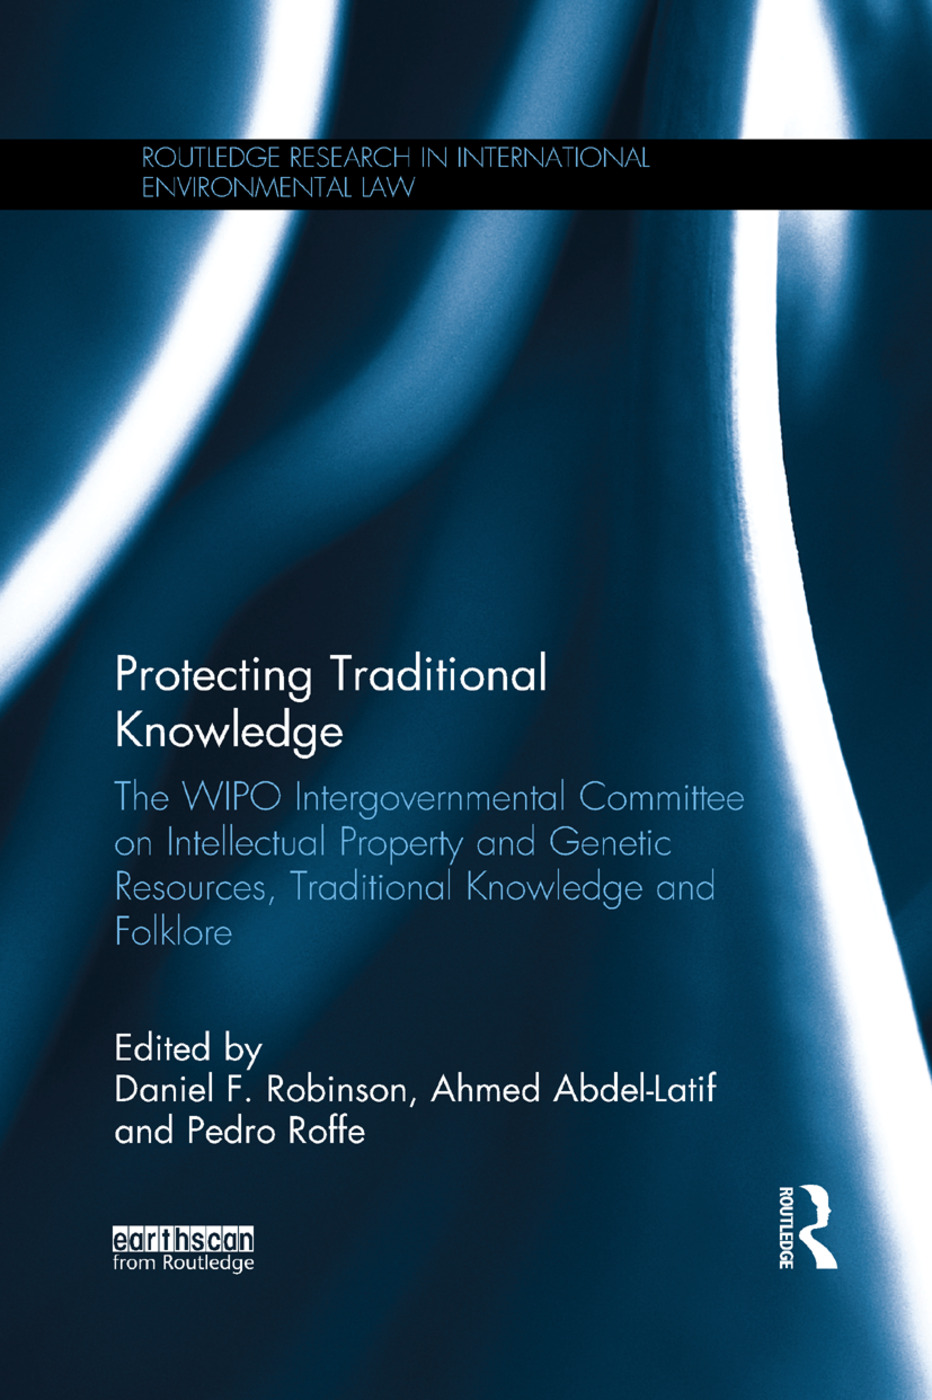 Protecting Traditional Knowledge: The WIPO Intergovernmental Committee on Intellectual Property and Genetic Resources, Traditional Knowledge and Folklore book cover